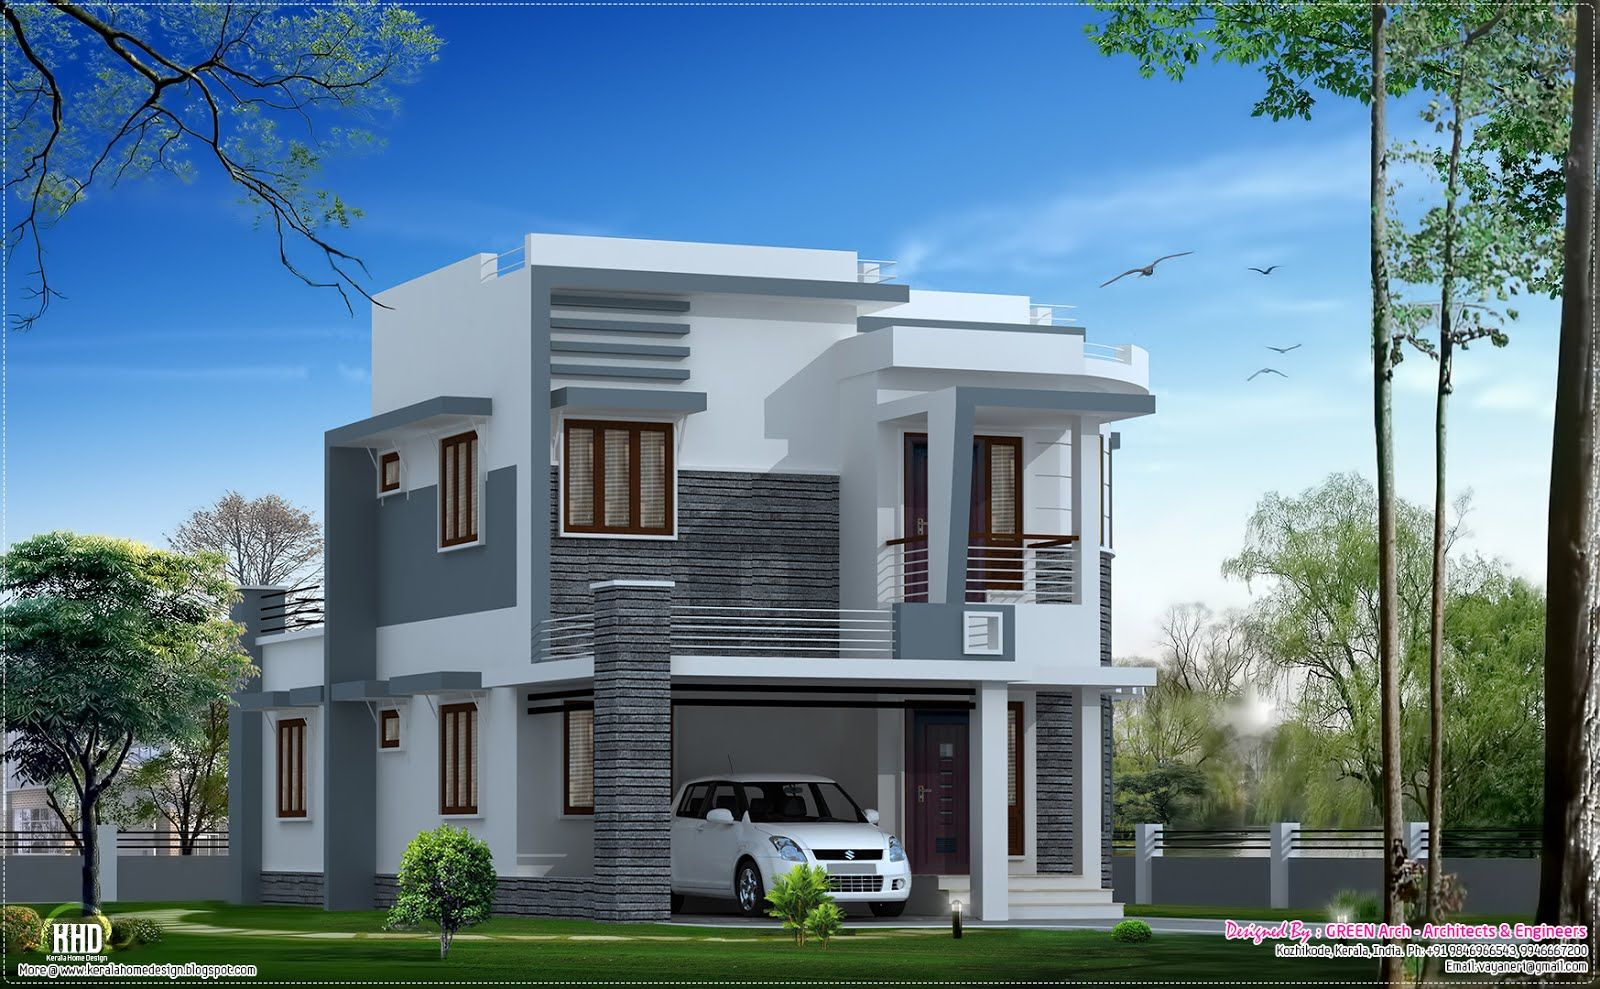 Simple Exterior House Designs In Kerala home designs | home design ideas